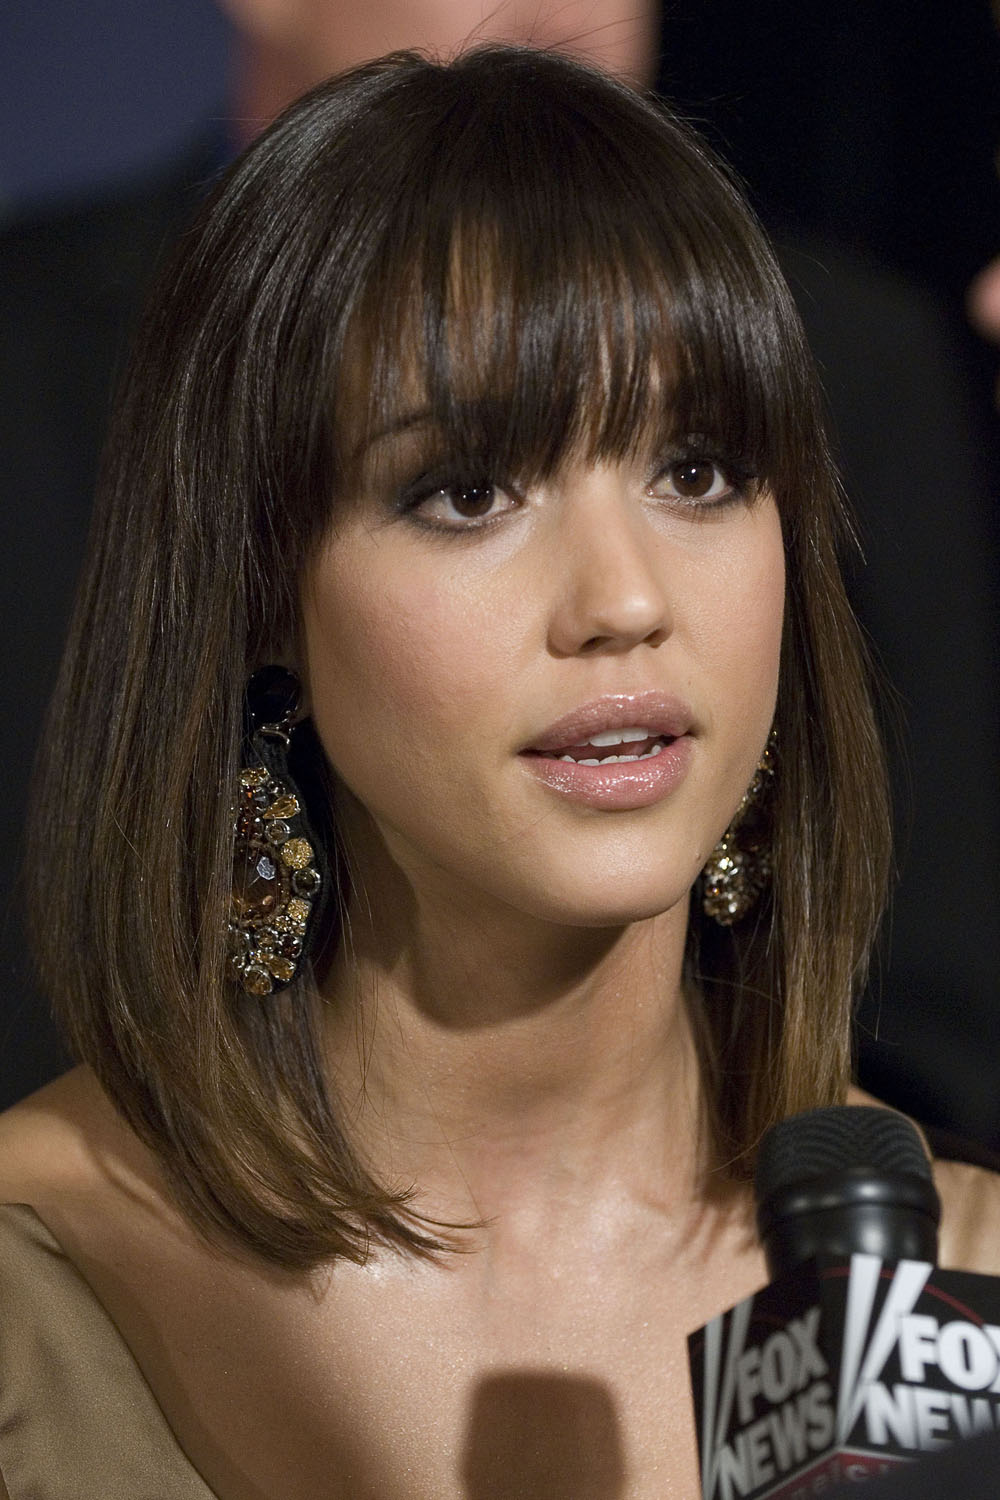 11 Rocking The Jessica Alba Bangs Hairstyles For Woman